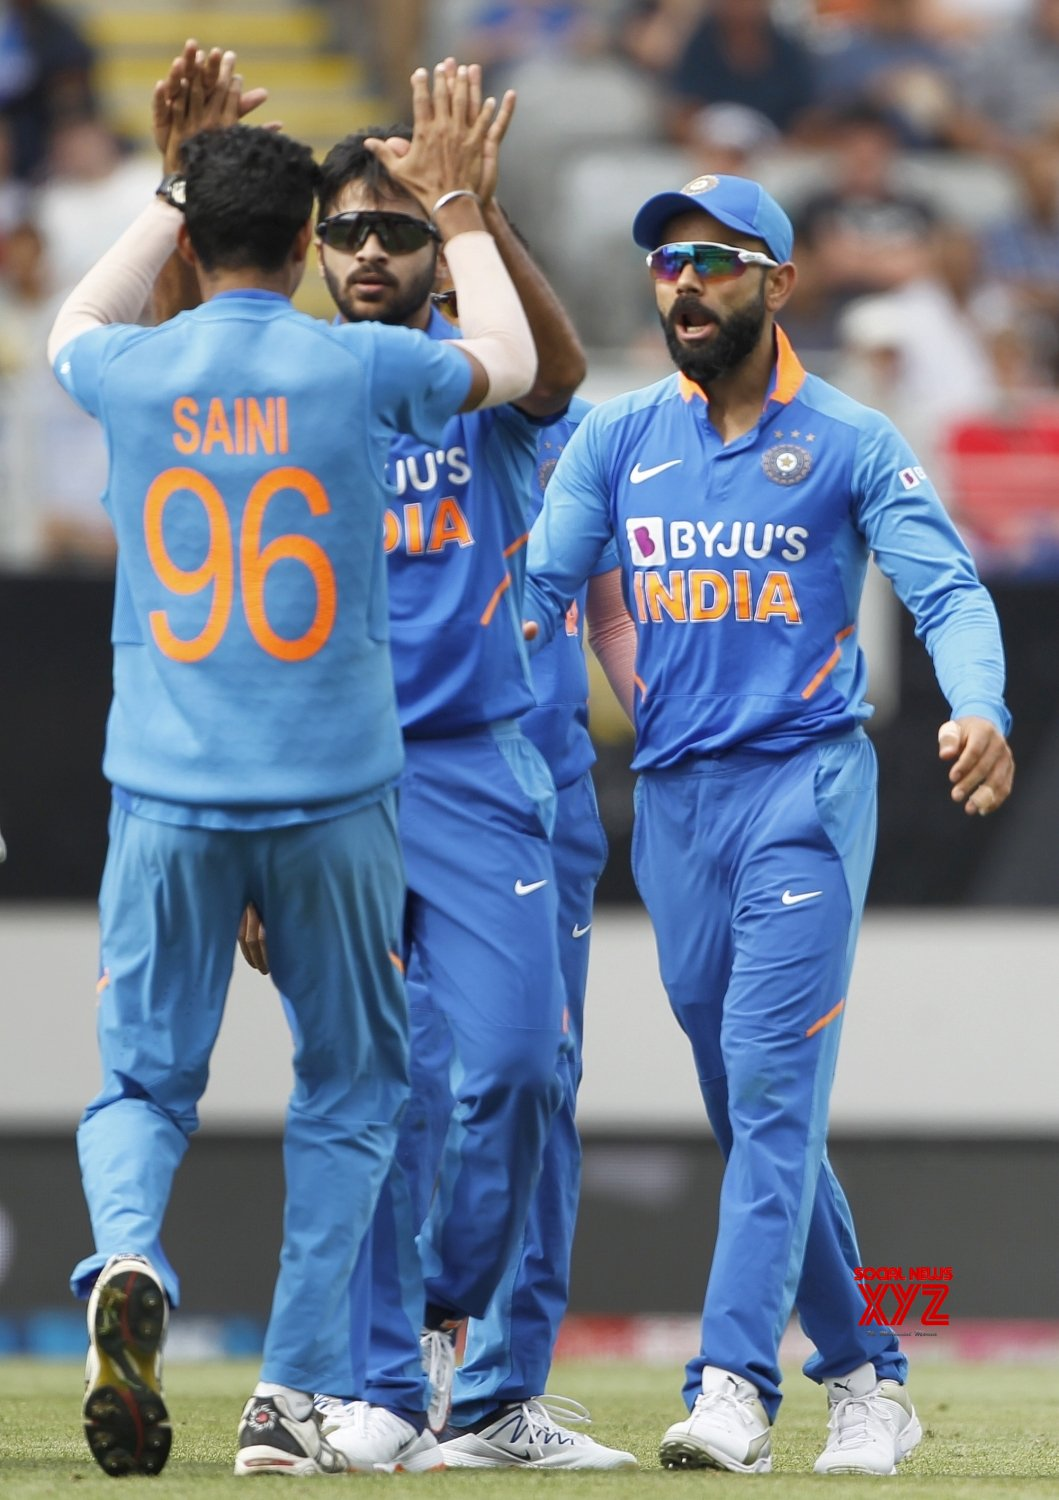 Auckland: 2nd ODI - India Vs New Zealand (Batch - 6) #Gallery